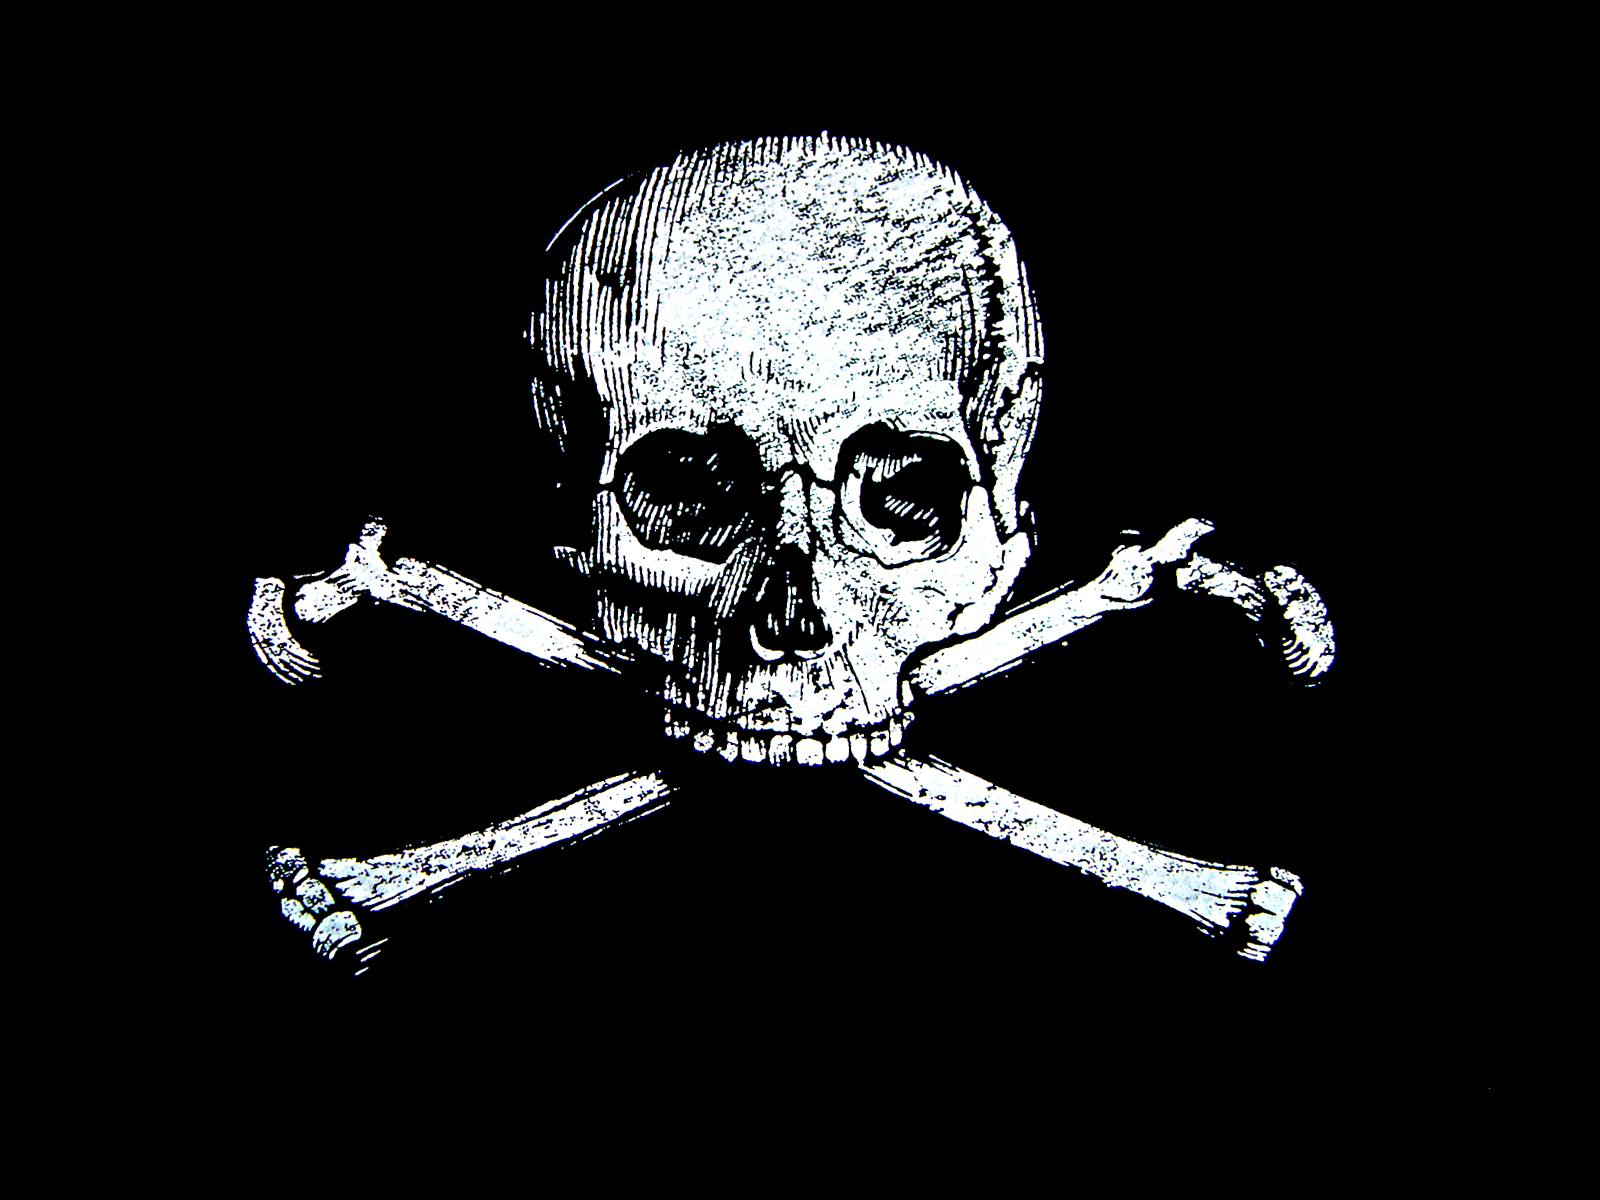 skull and bones Skull and bones: america's most powerful and mysterious secret society [conrad bauer] on amazoncom free shipping on qualifying offers skulls and bones, a secret society that could easily be the most powerful in america nobody likes the idea that there are hugely influential powers operating behind closed doors.